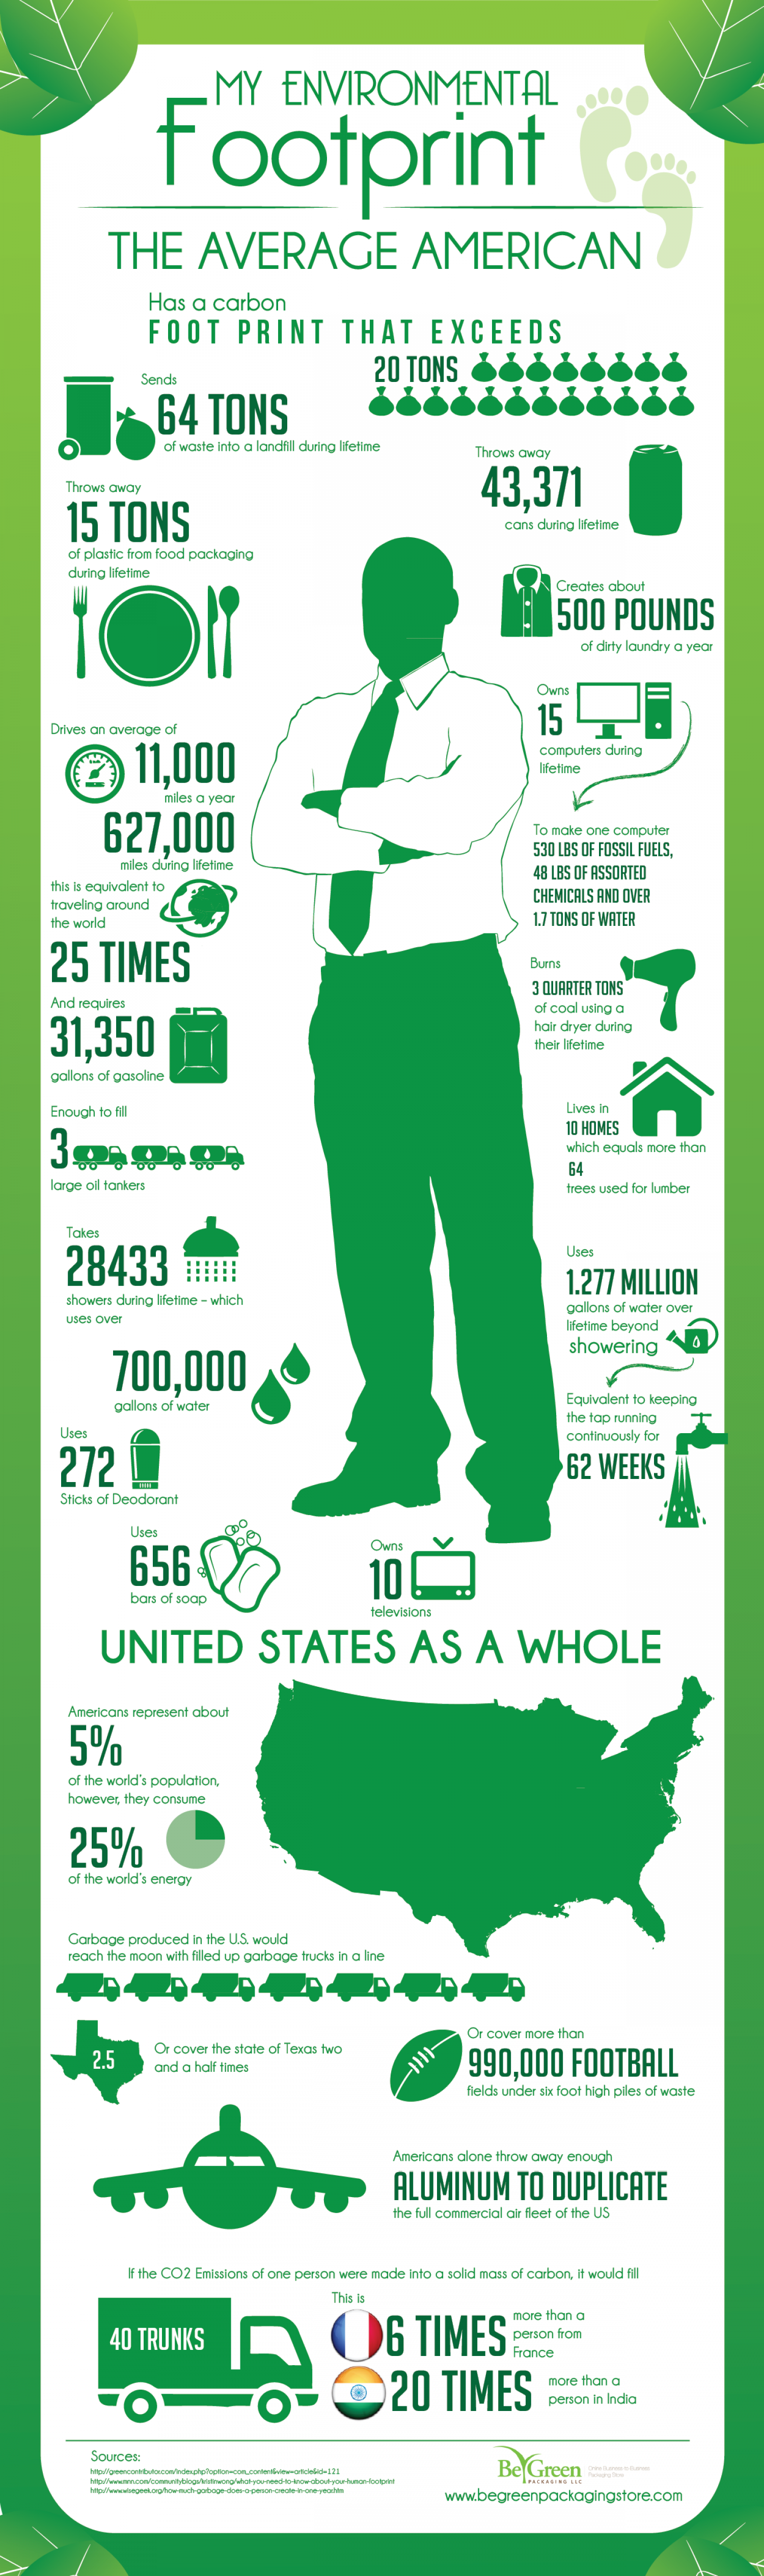 My Environmental Footprint Infographic